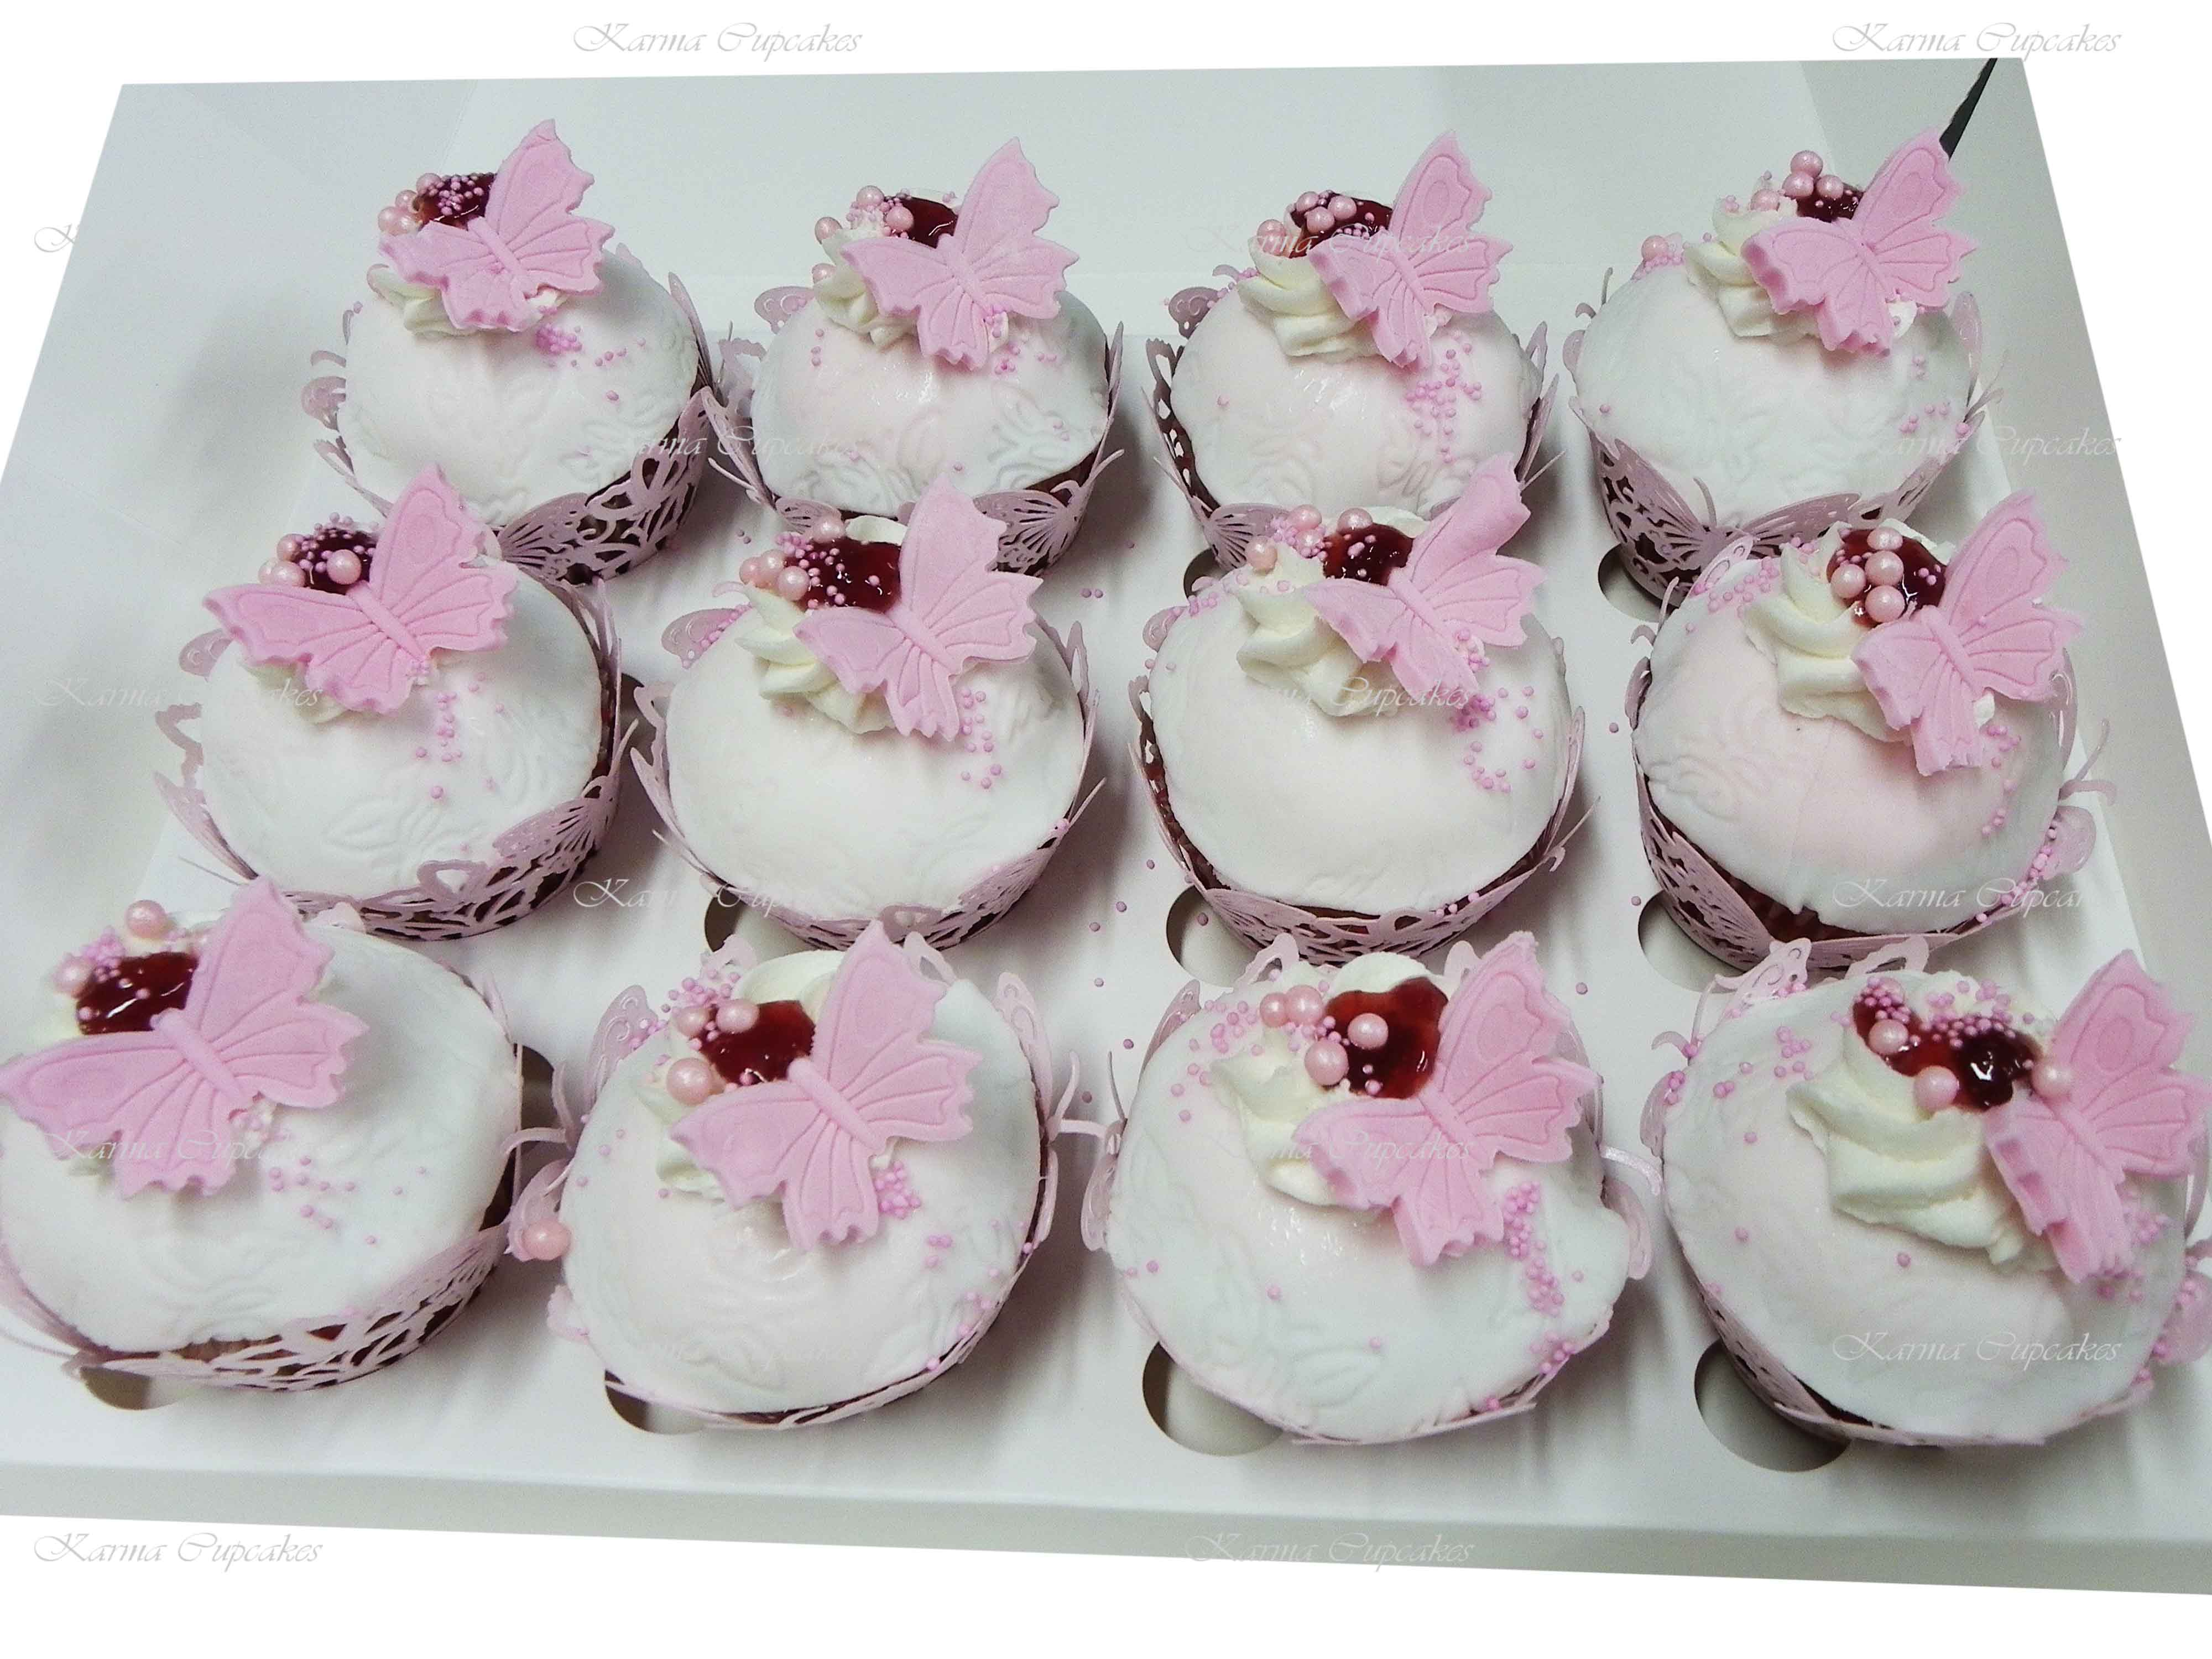 Gourmet Butterfly Cupcakes with Jam and lace wrappers